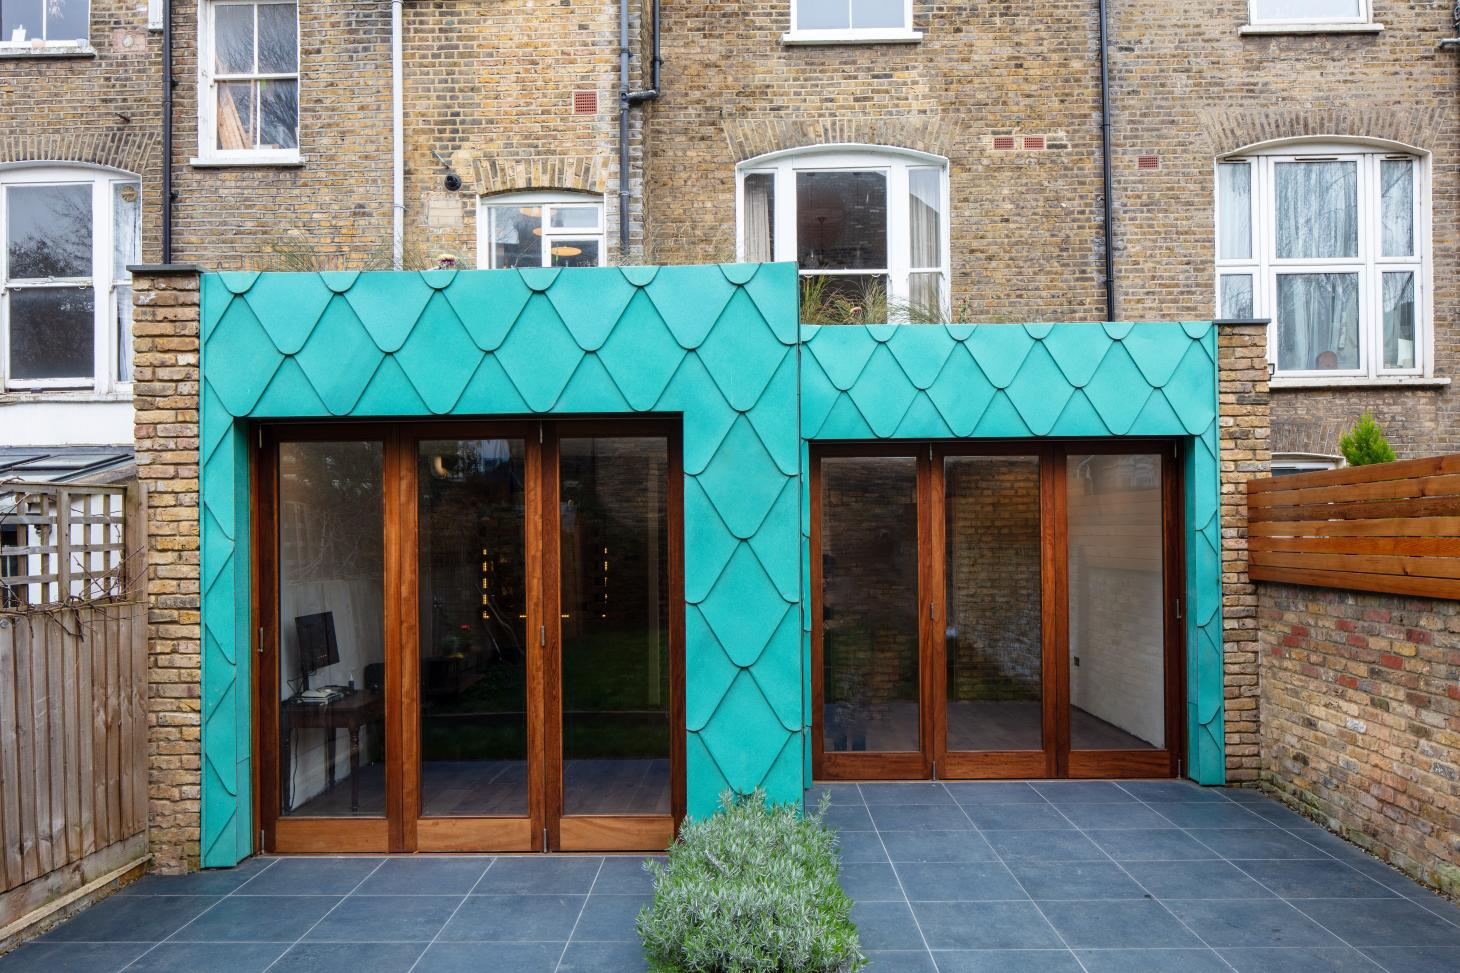 green copper tiles clad this London house extension